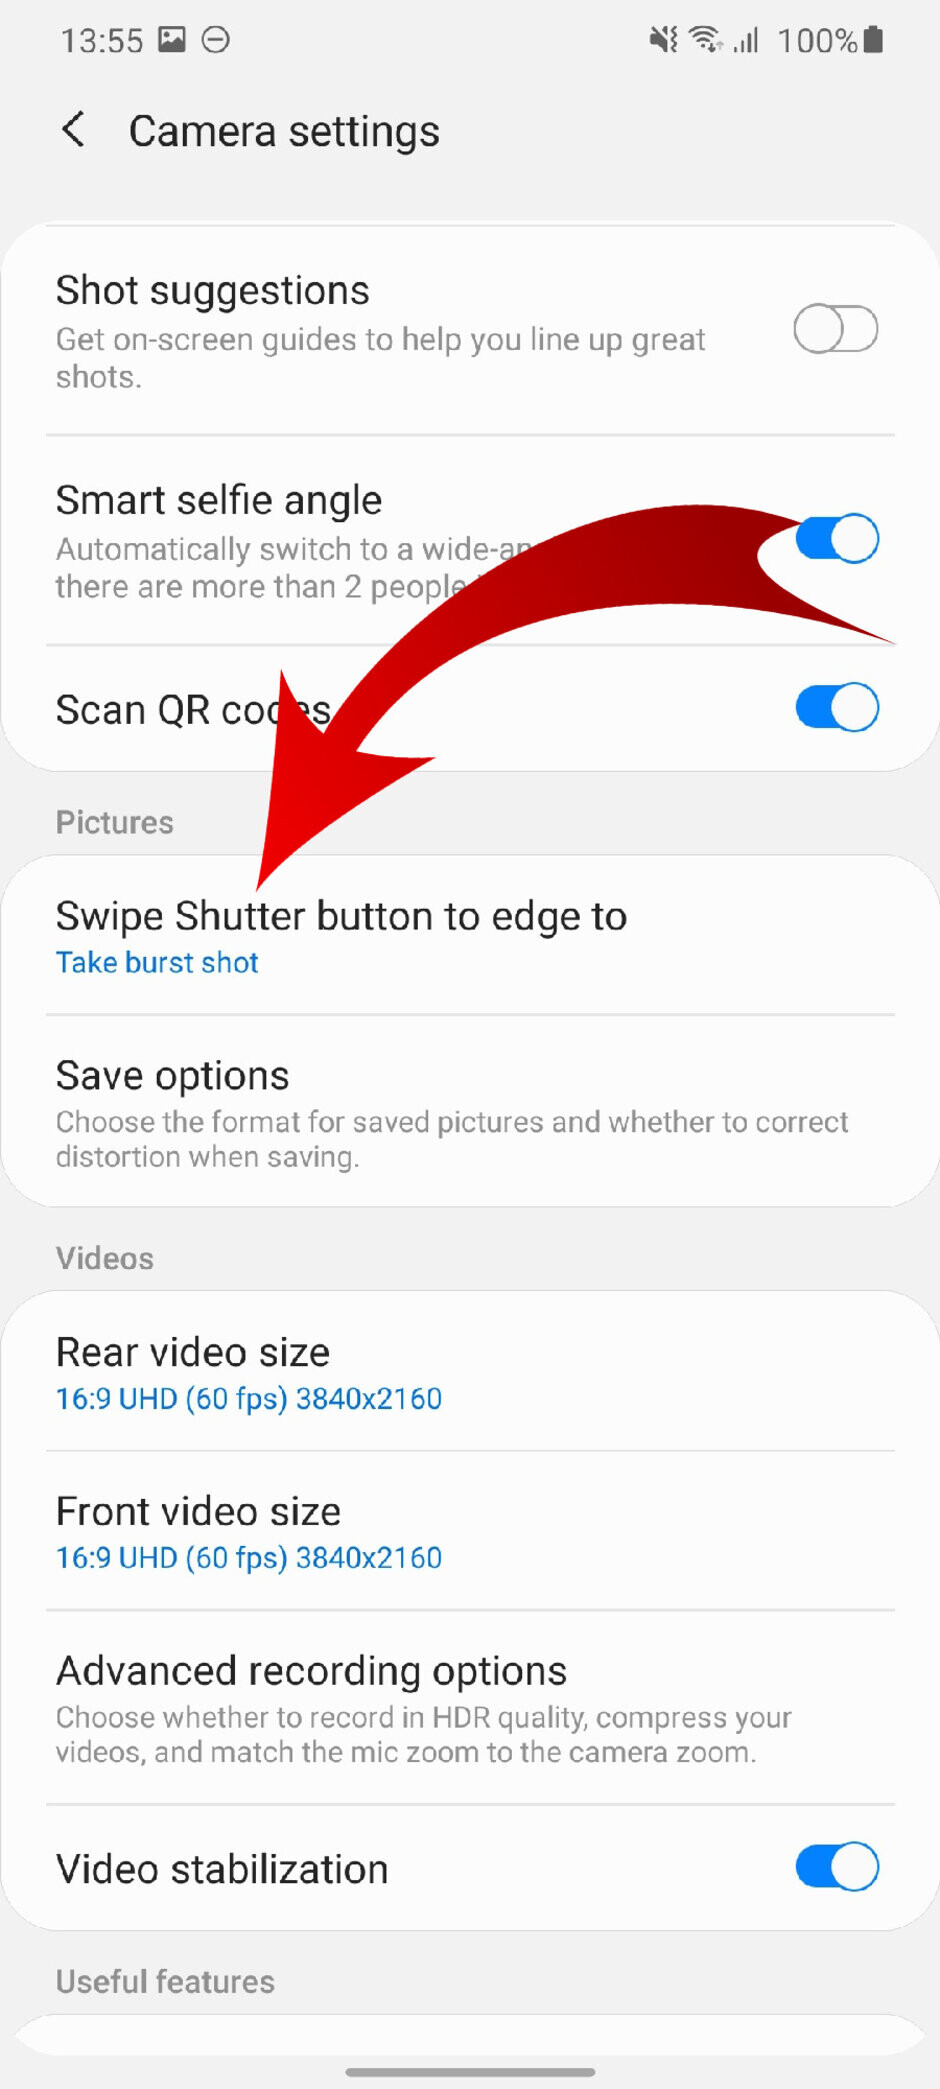 How to quickly create GIFs with the Galaxy S20 - Samsung Galaxy S20, S20 Plus, S20 Ultra camera tips & tricks: How to make the most out of it